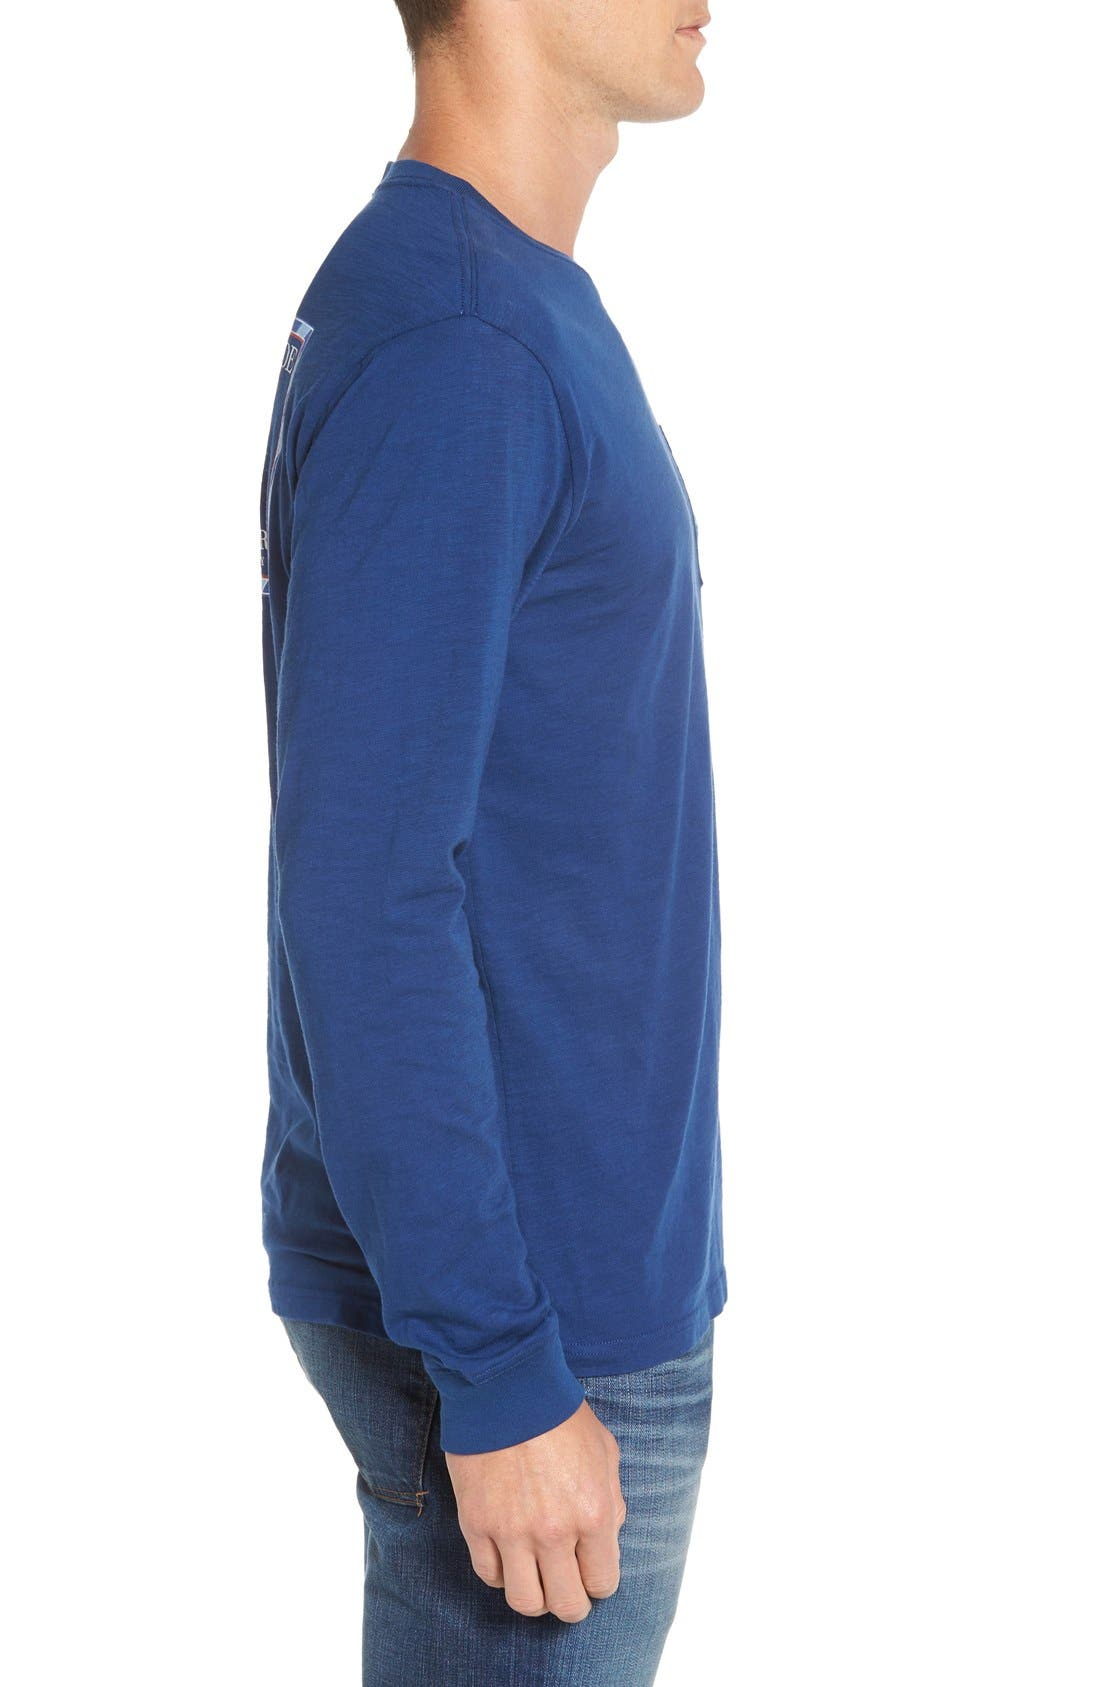 'Channel Marker' Graphic Pocket Long Sleeve T-Shirt,                             Alternate thumbnail 4, color,                             Yacht Blue